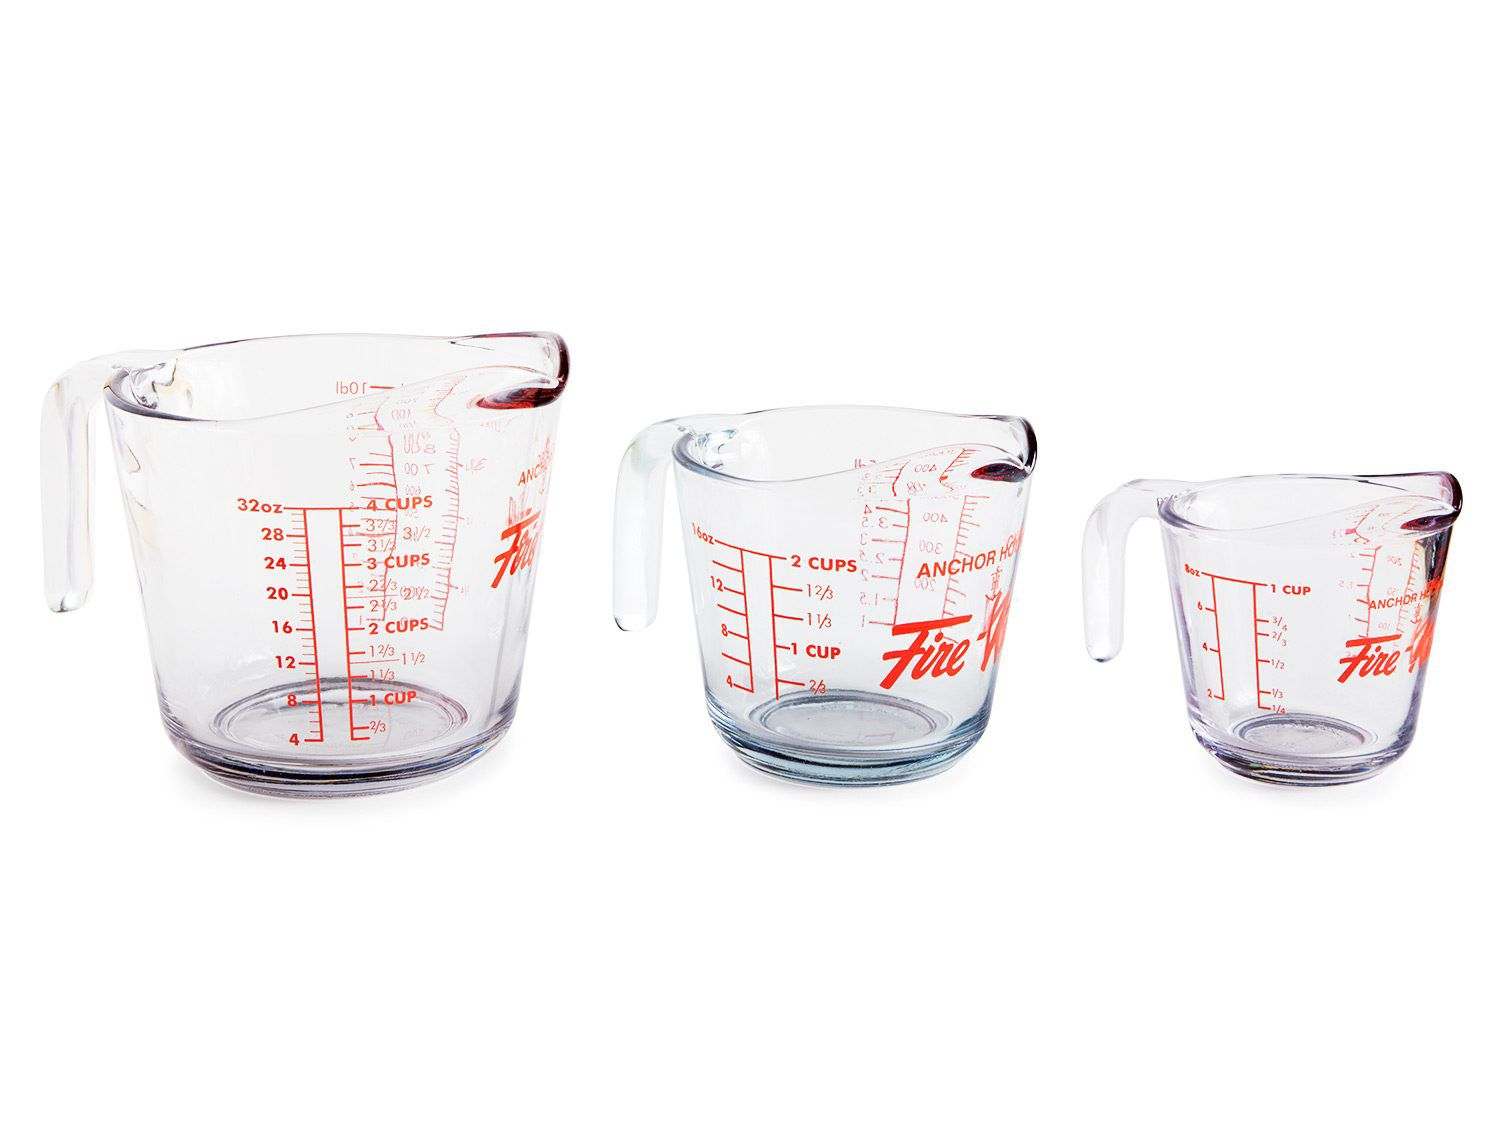 Three measuring cups of varying sizes are lined up.